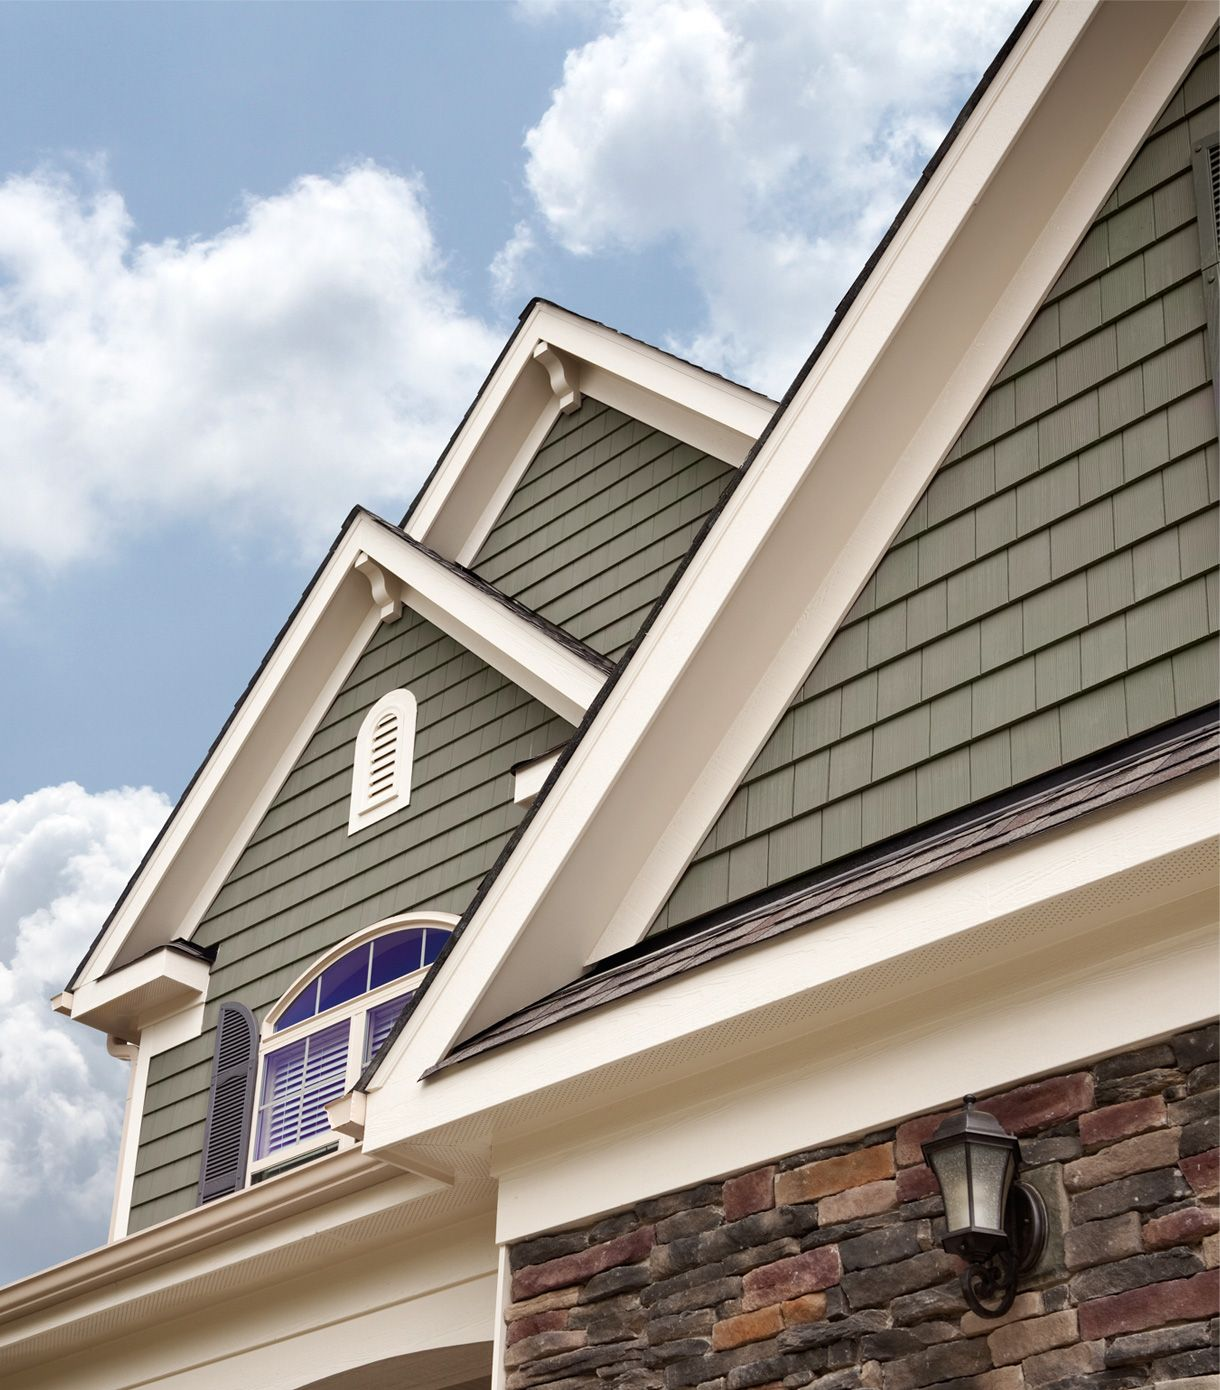 Exterior Siding Design: Decorative Vinyl Siding Options